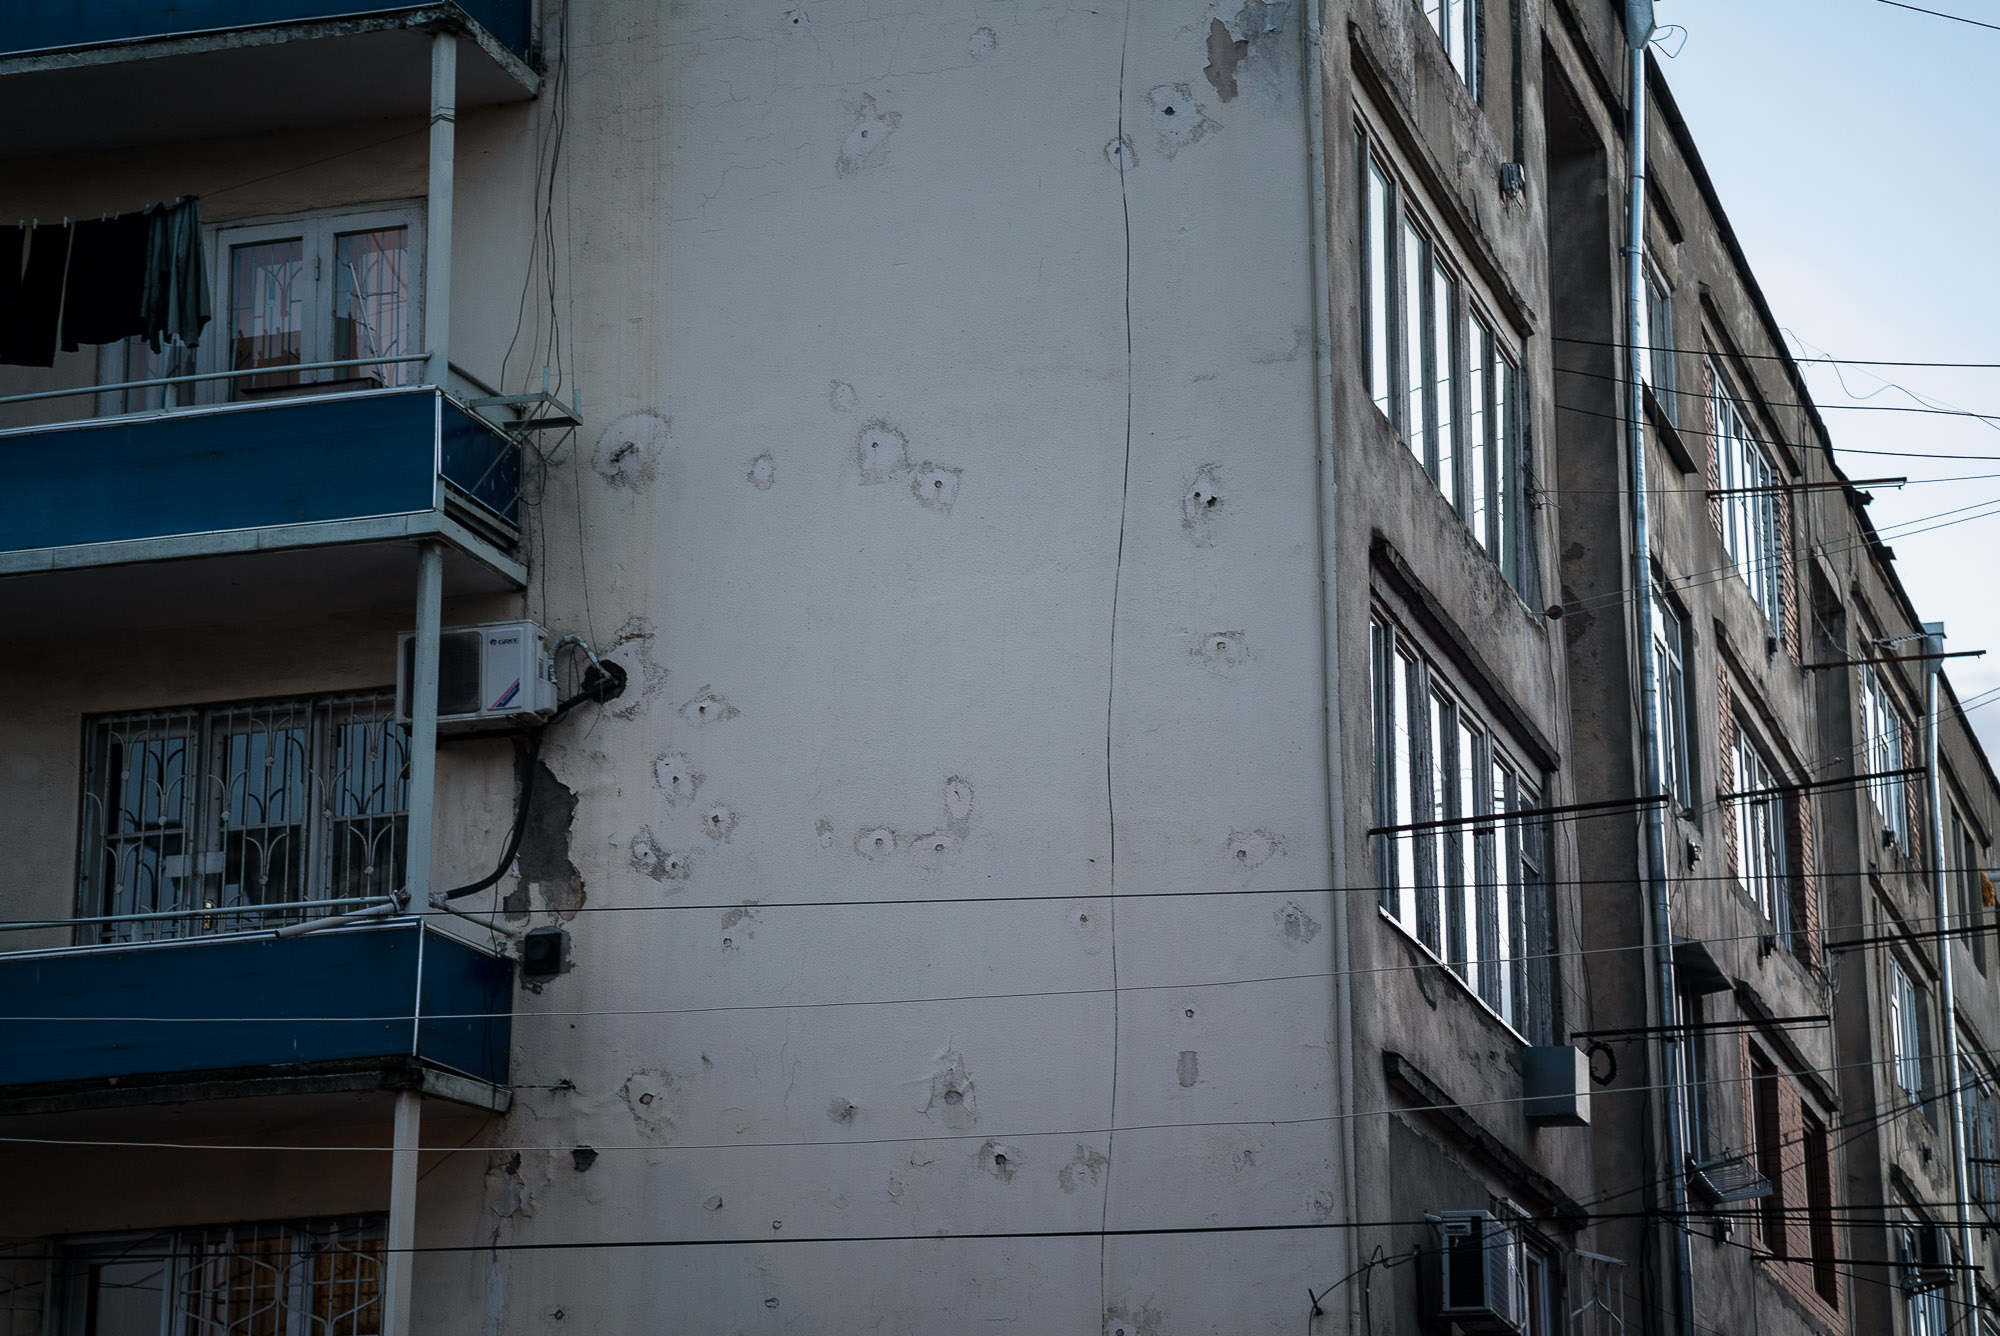 more bullet holes